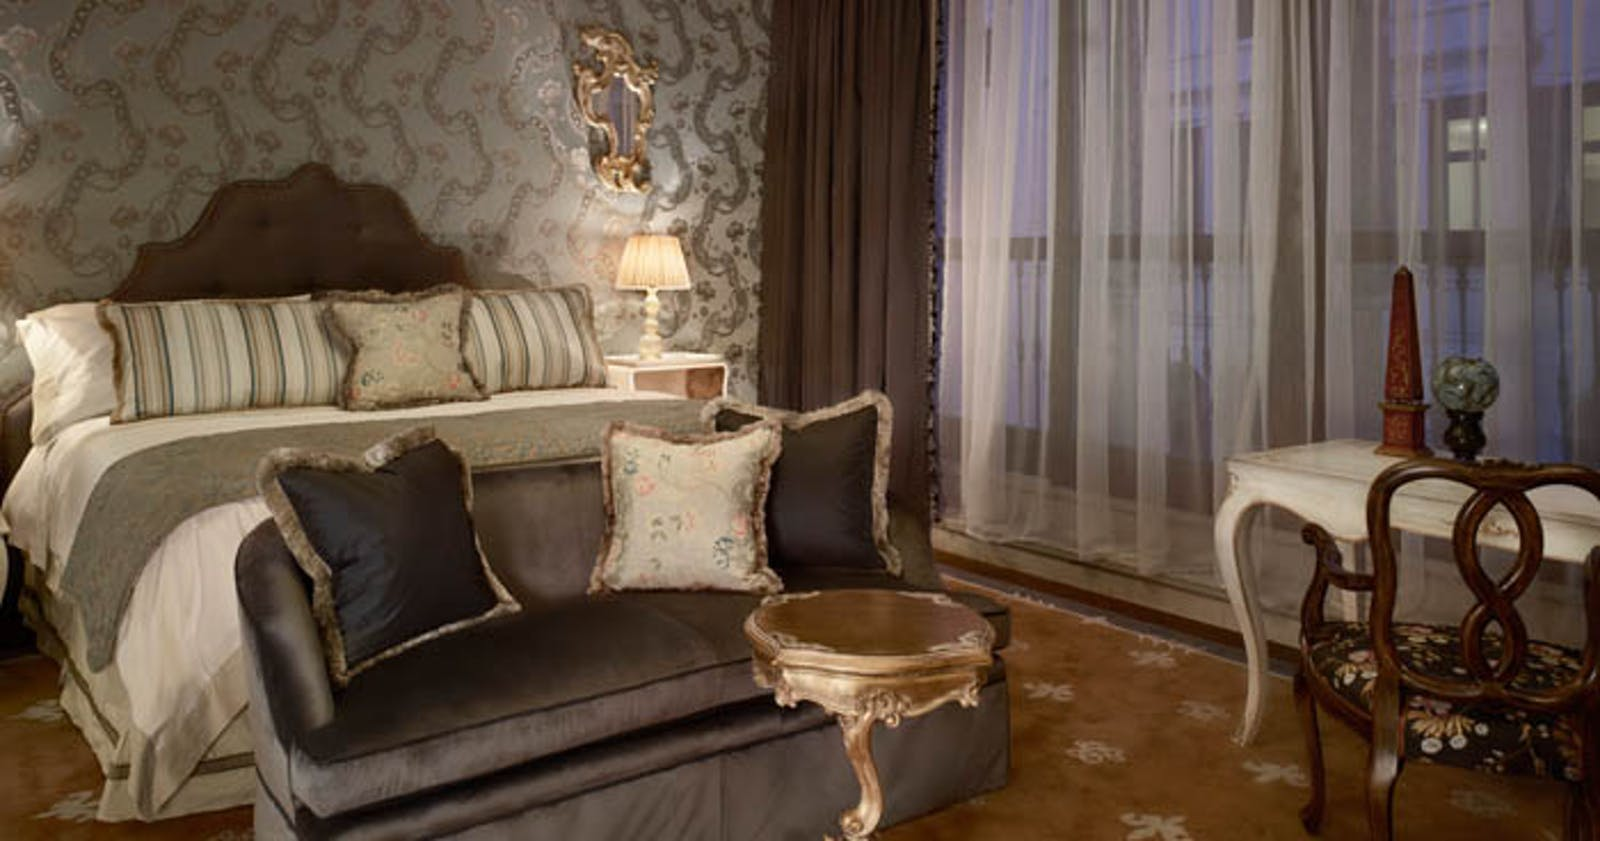 Prestige Room at Gritti Palace, Venice, Italy